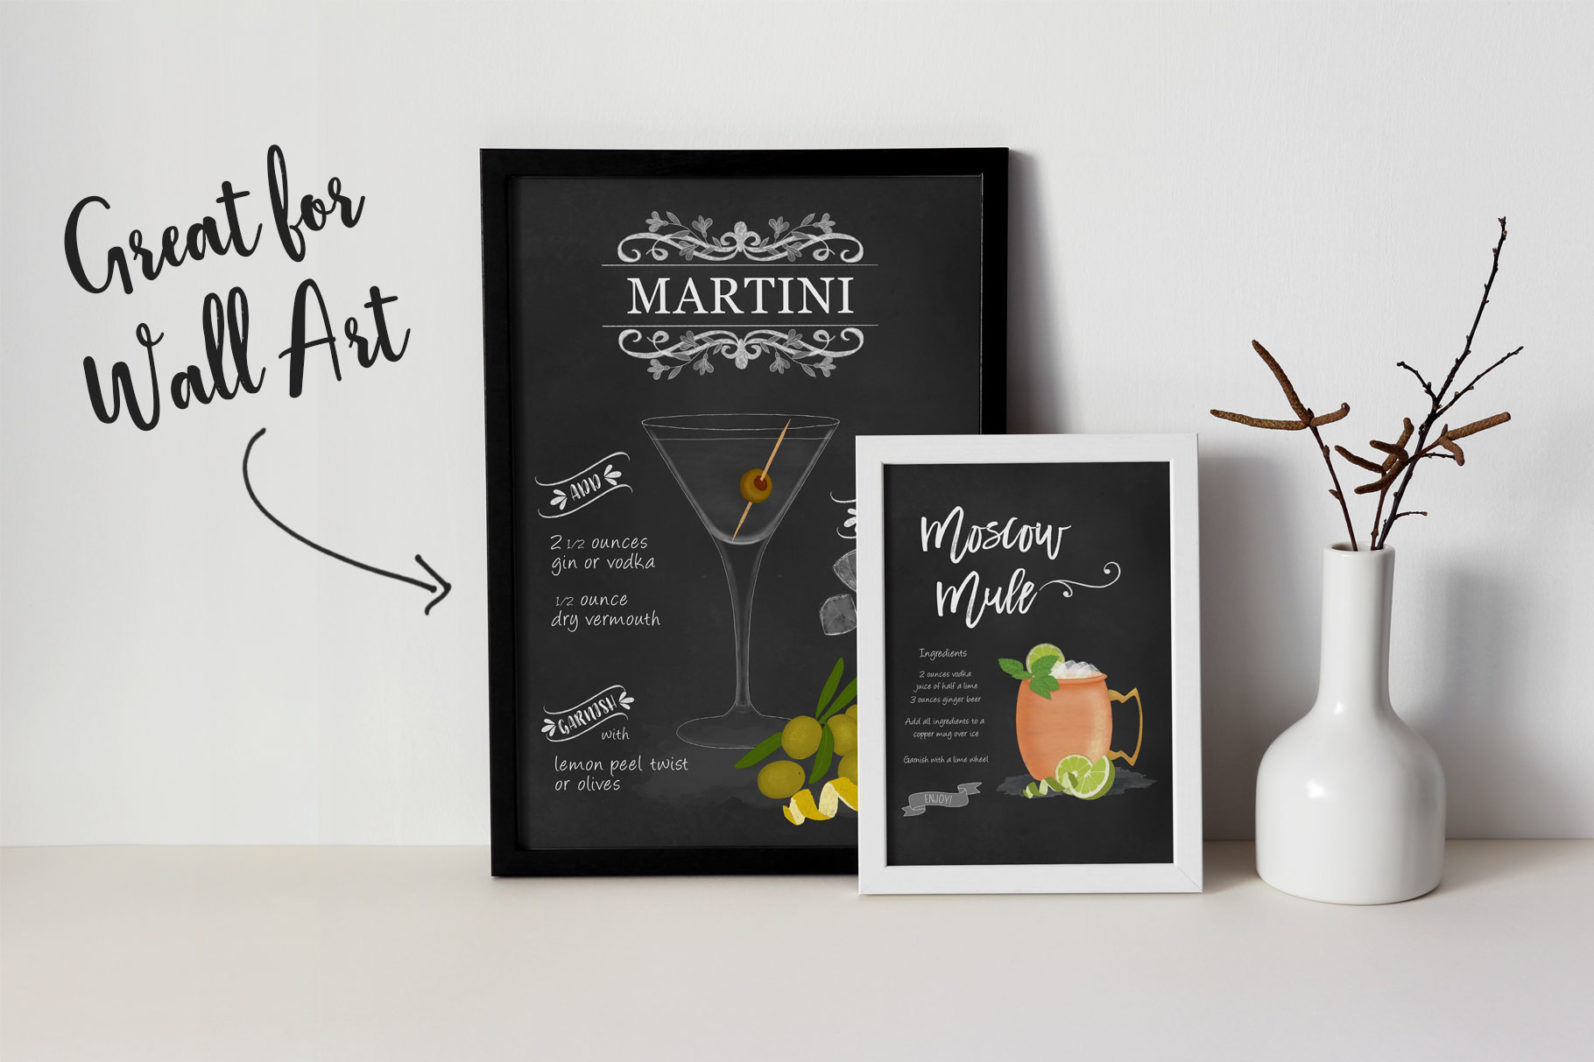 Cocktail Illustrations & Posters - page frames -